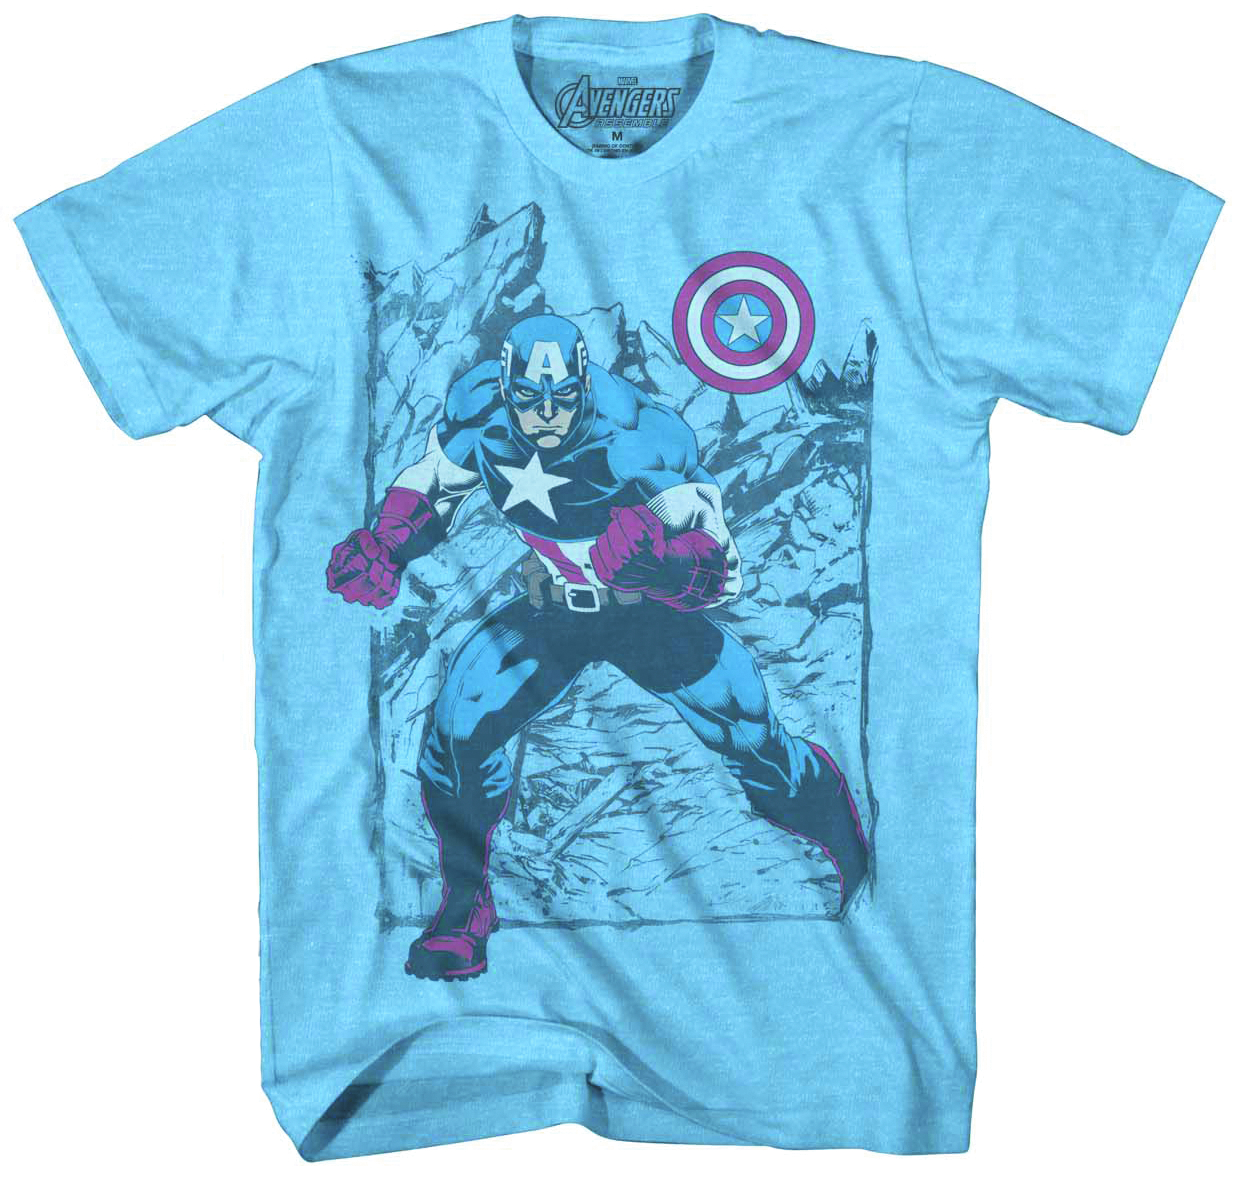 CAPTAIN AMERICA FADED GLORY PX BLUE T/S XXL